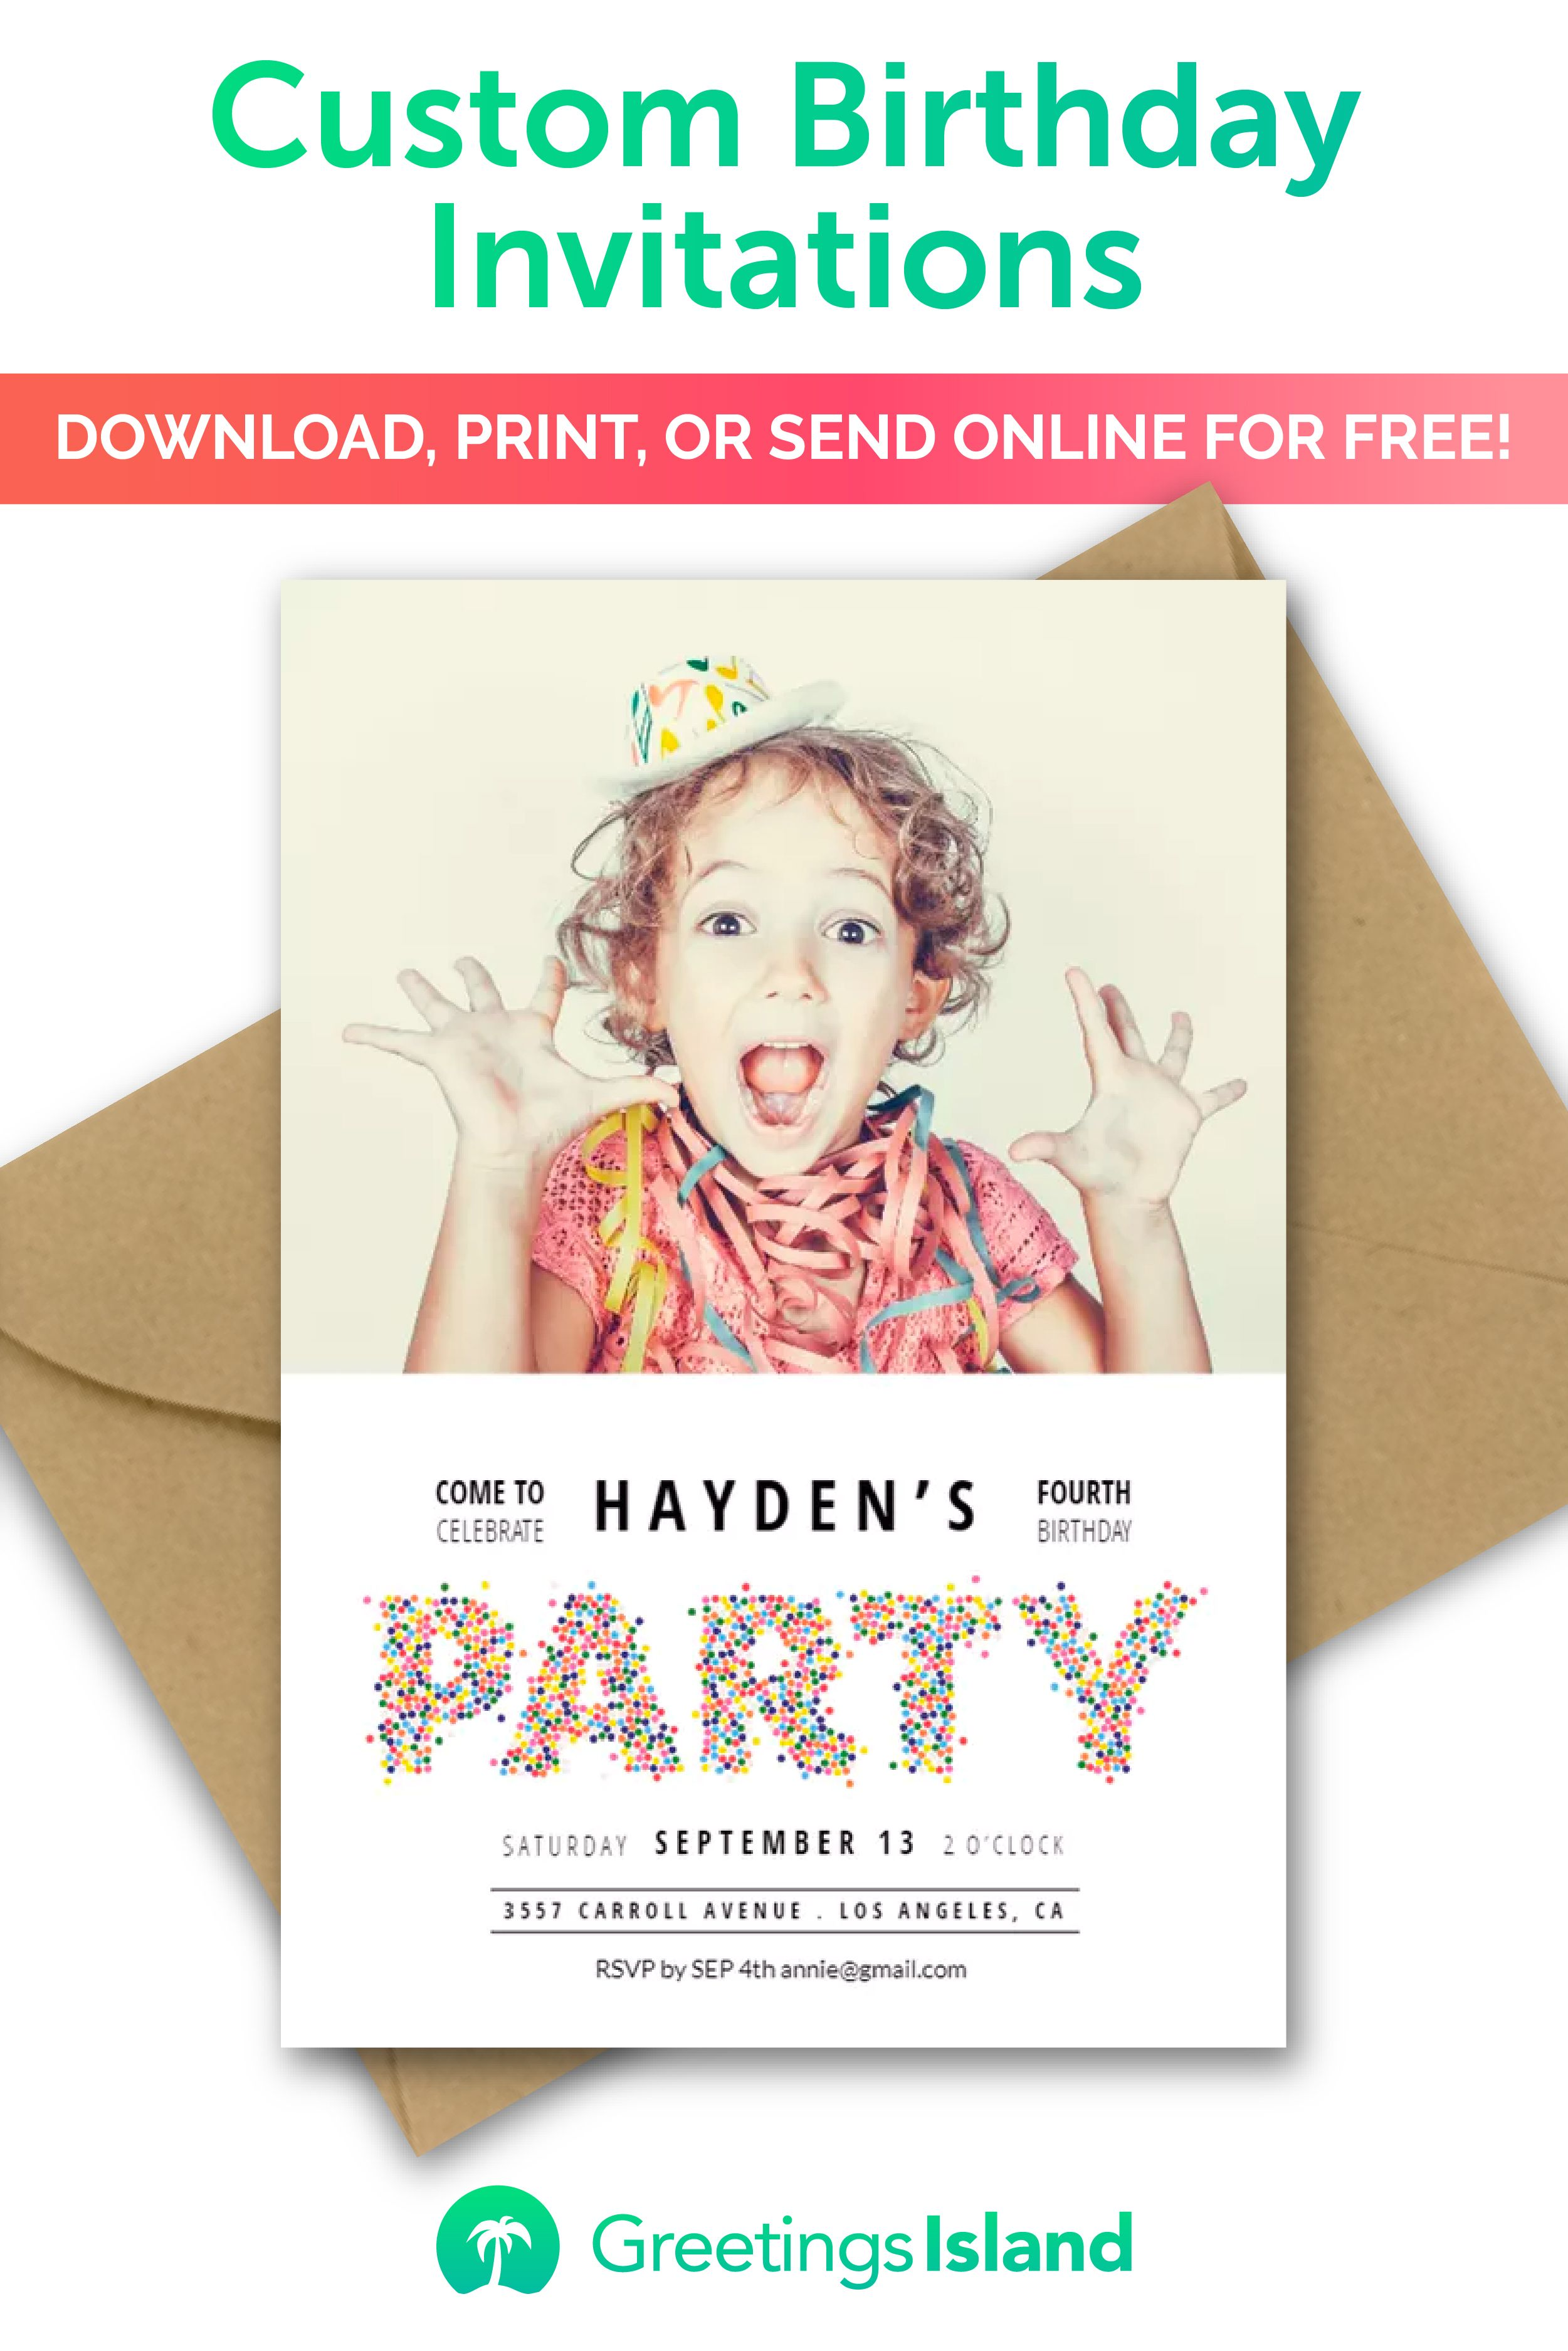 Create your own birthday invitation in minutes. Download, print or